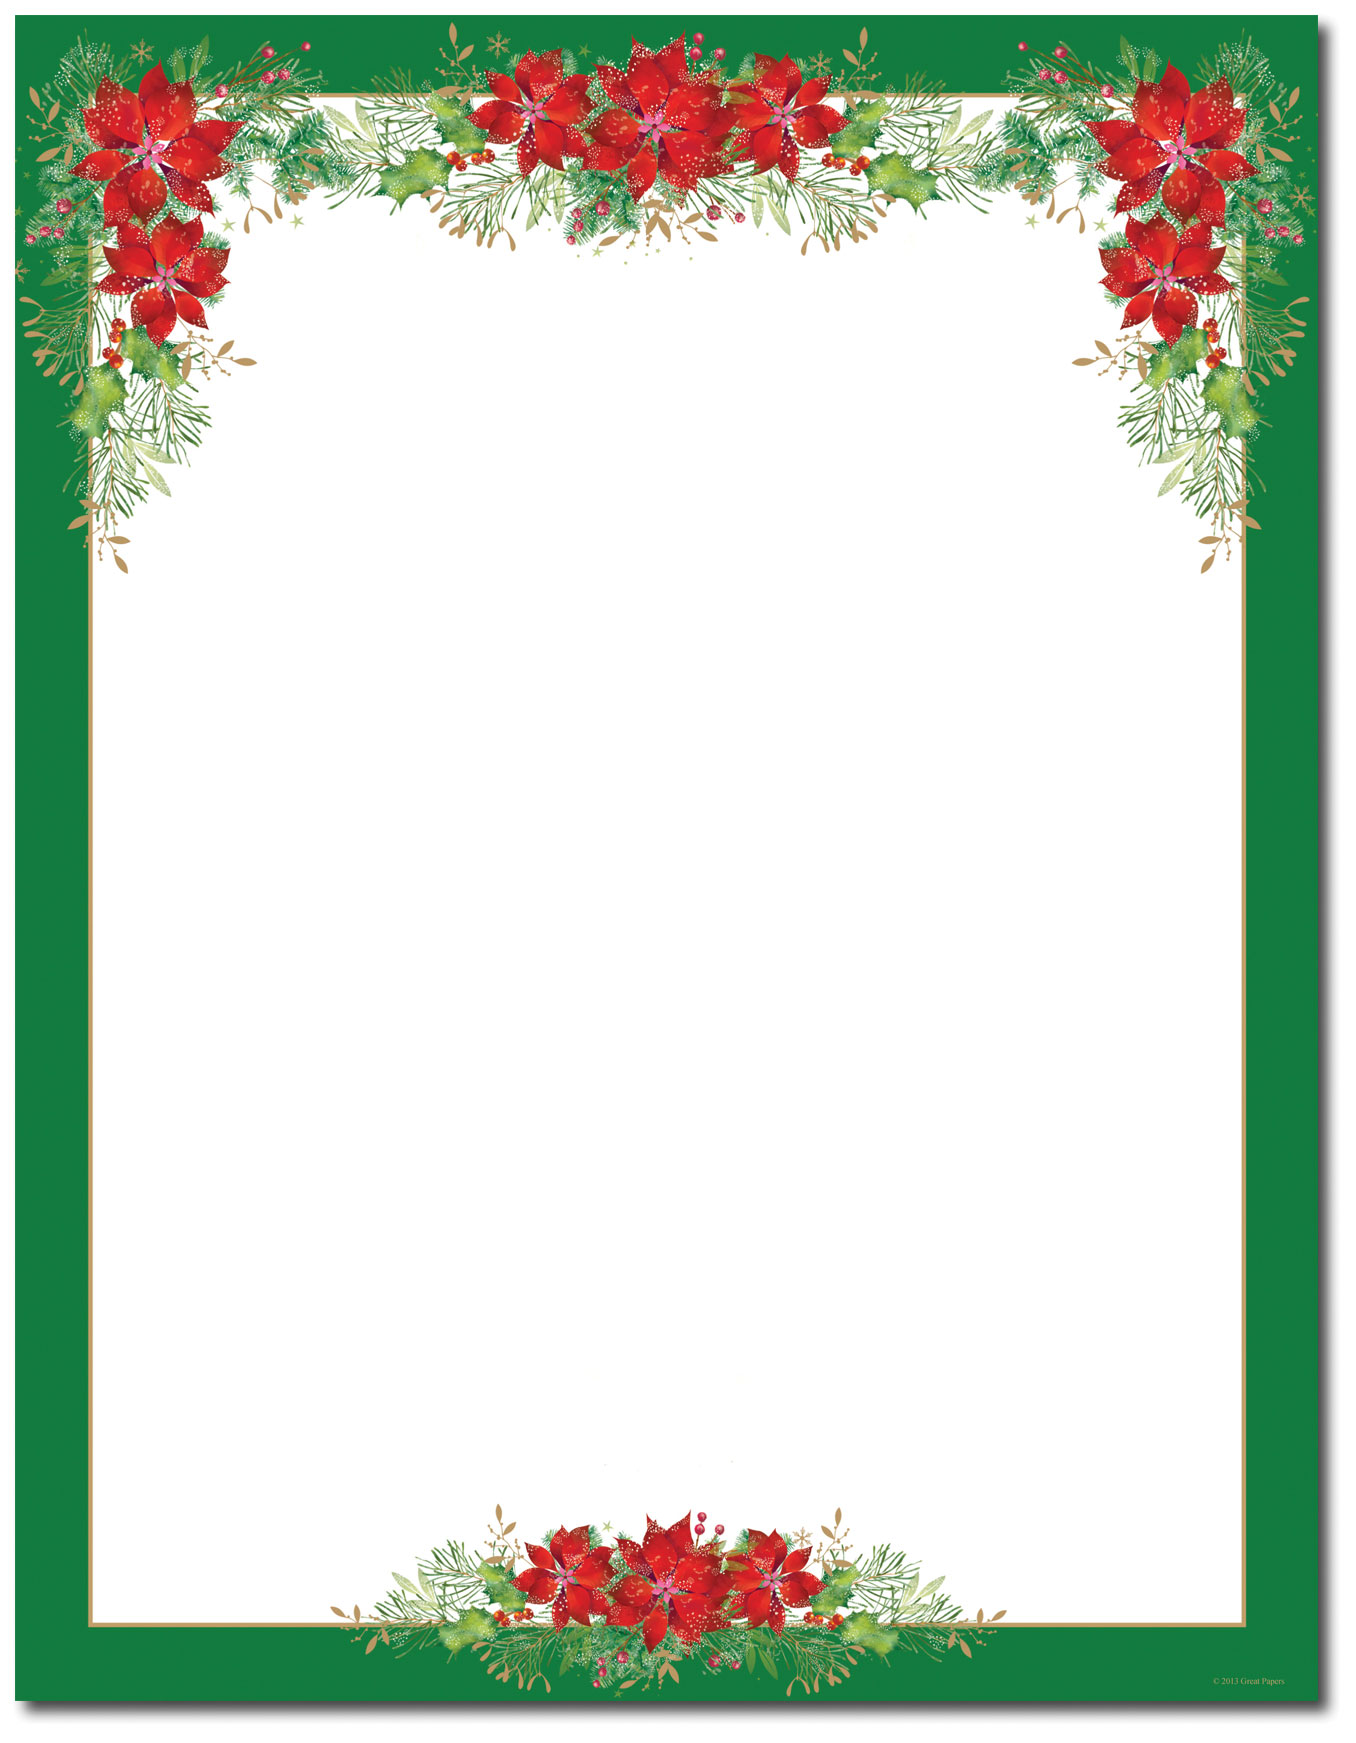 15 Poinsettia Page Border Designs Images.